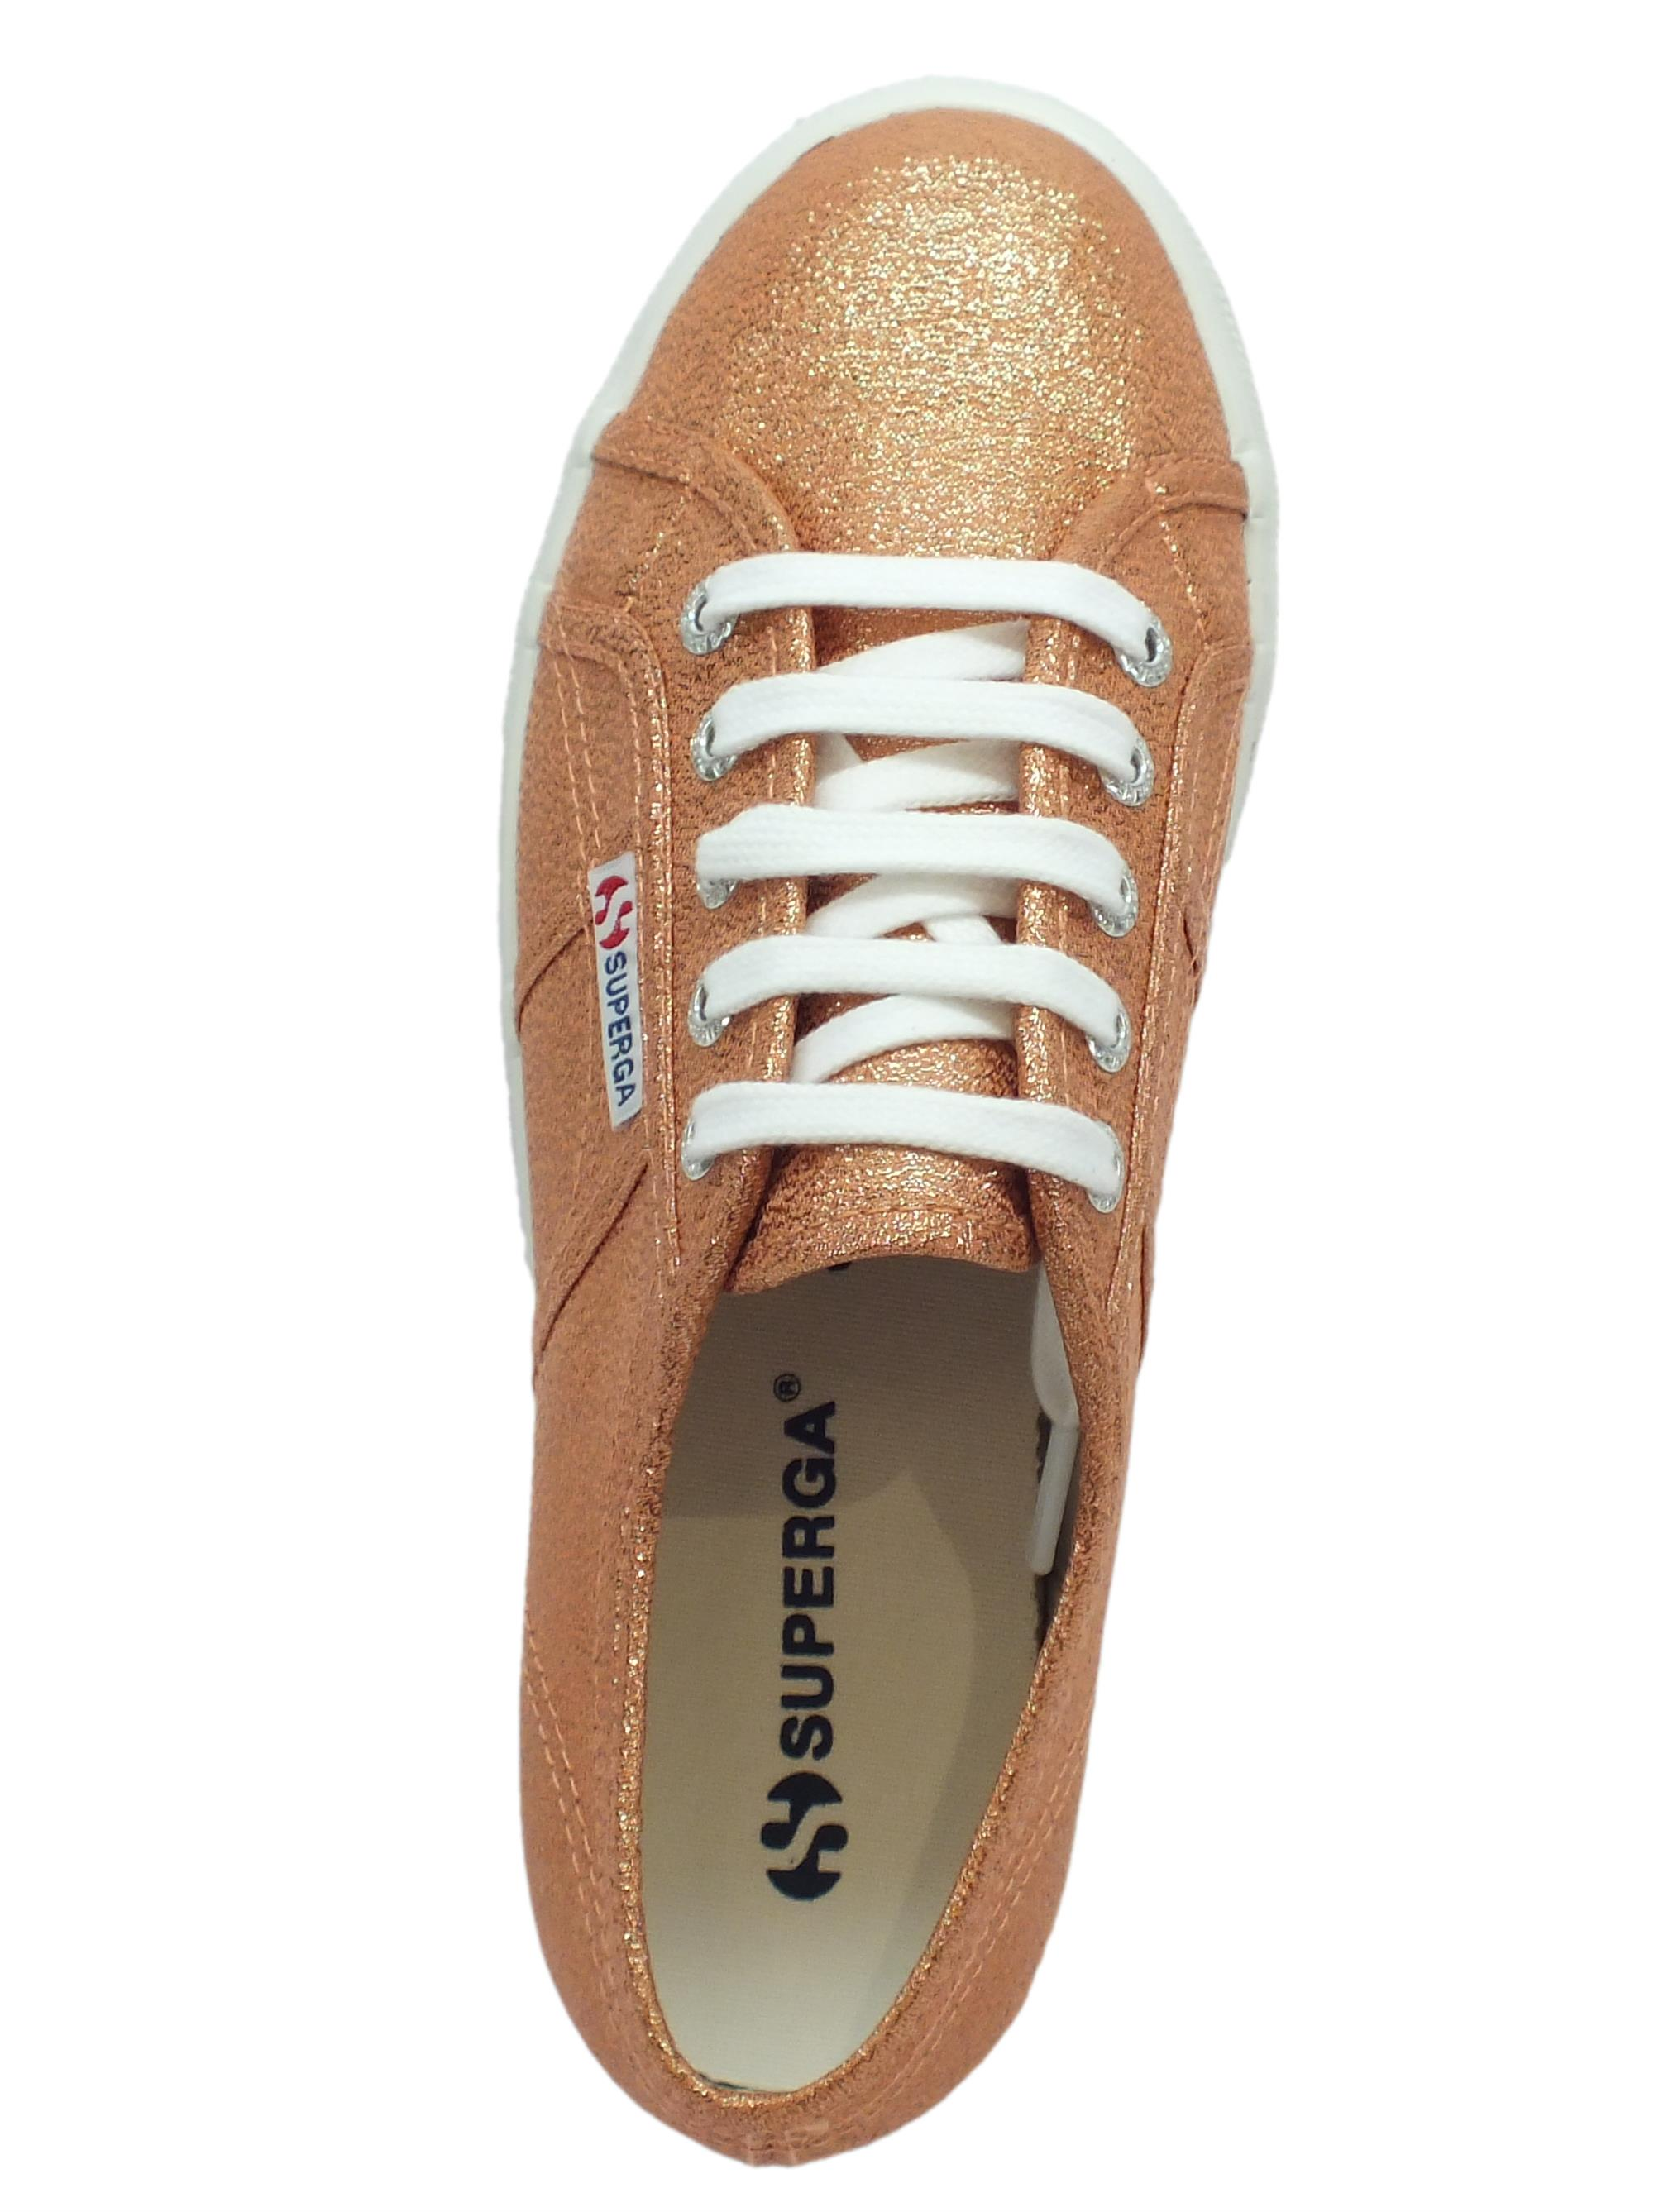 ... Sneakers Superga per donna in tessuto laminato rose gold zeppa alta 693083a49f4